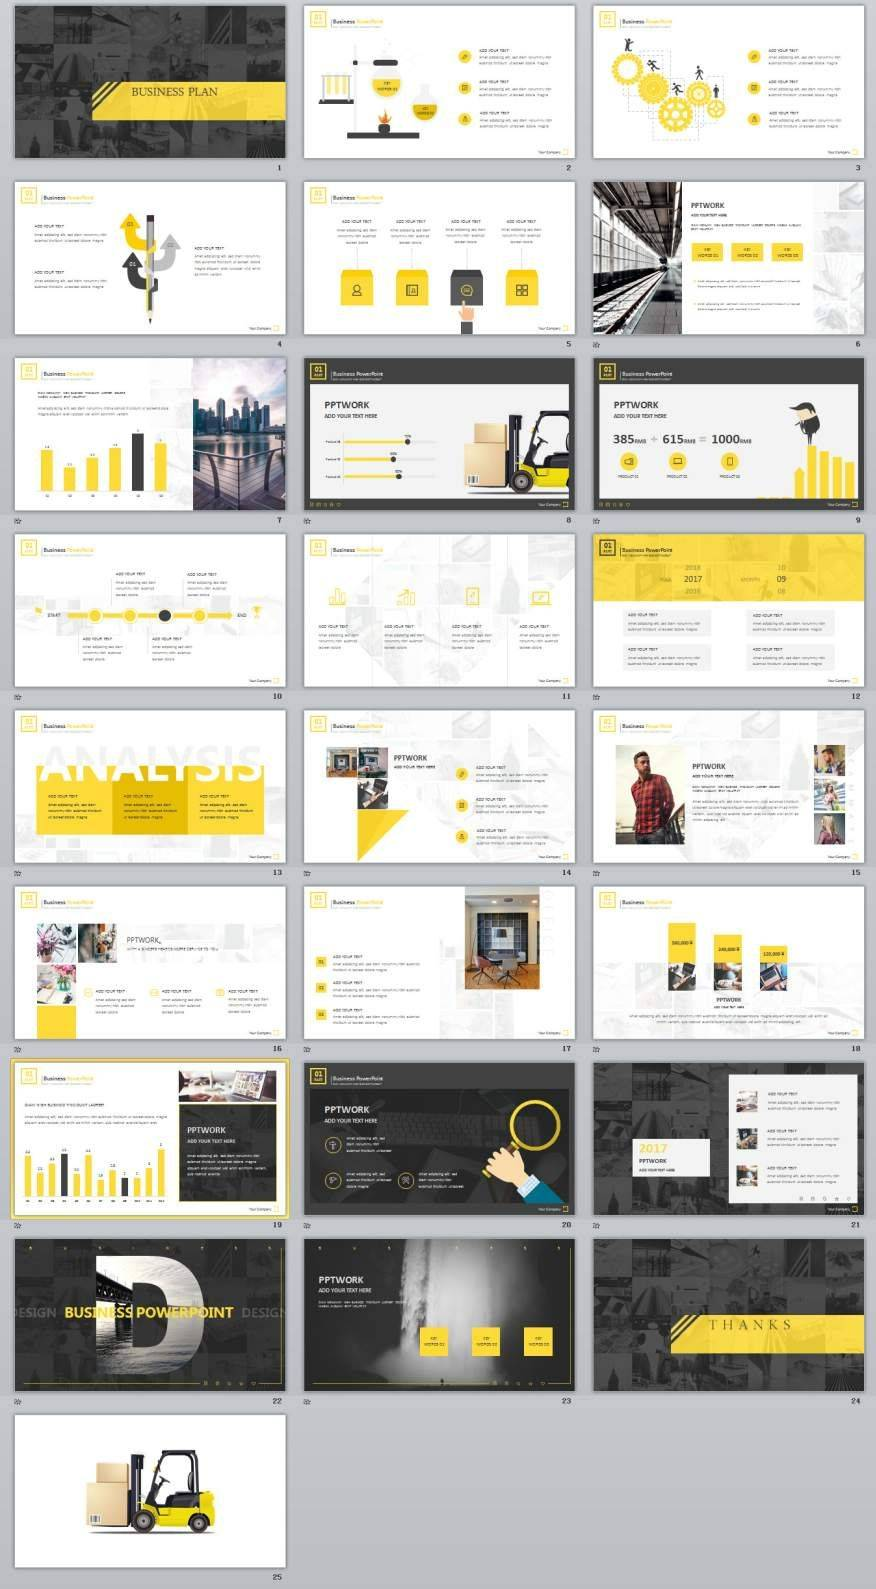 Jafar Business Plan Powerpoint Template Free